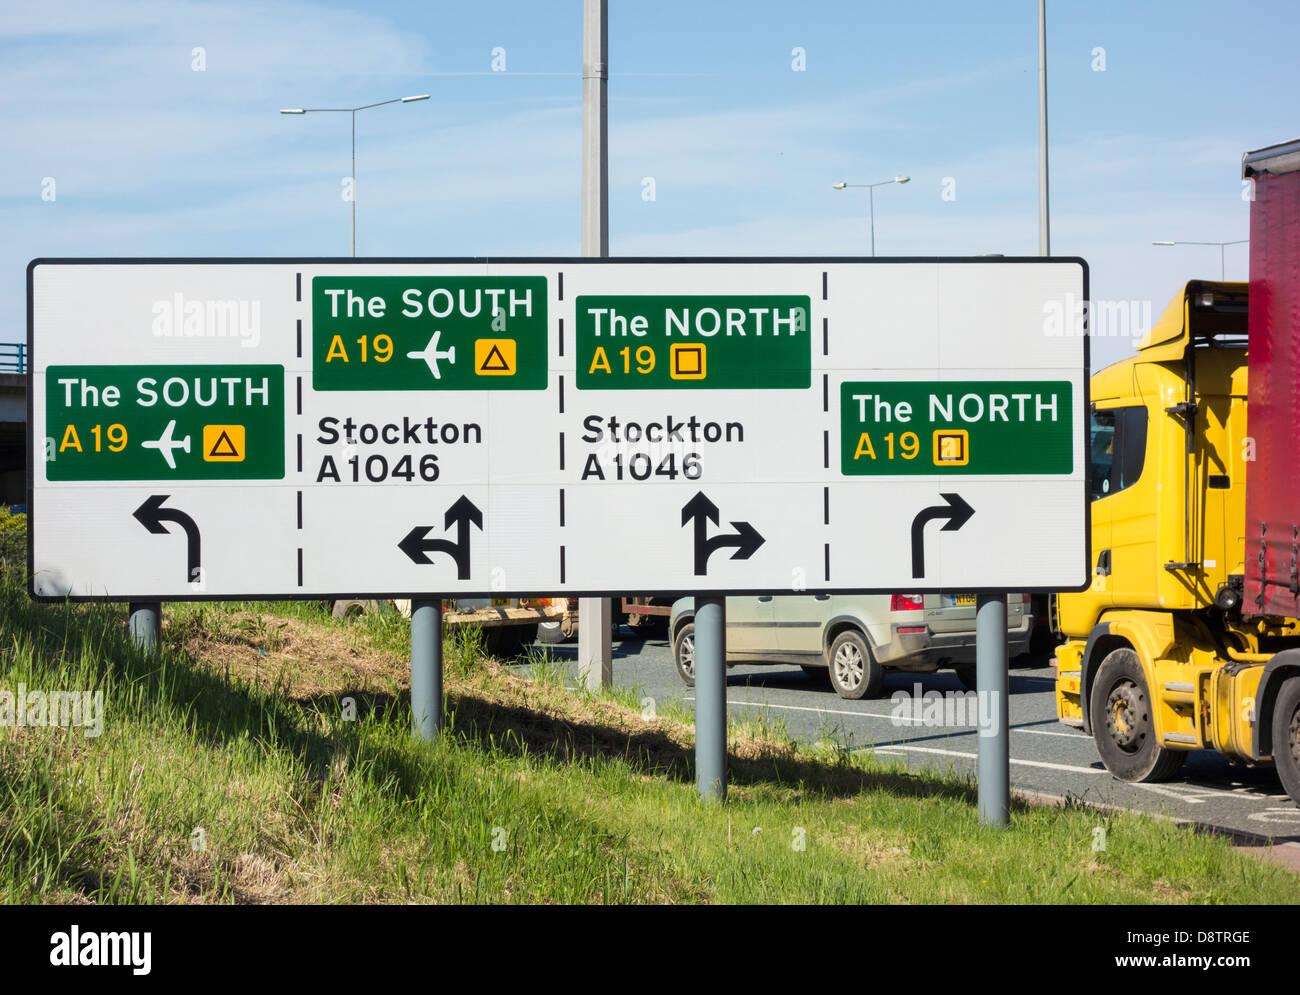 North, South road sign at Portrack roundabout, Stockton on Tees, England, UK - Stock Image